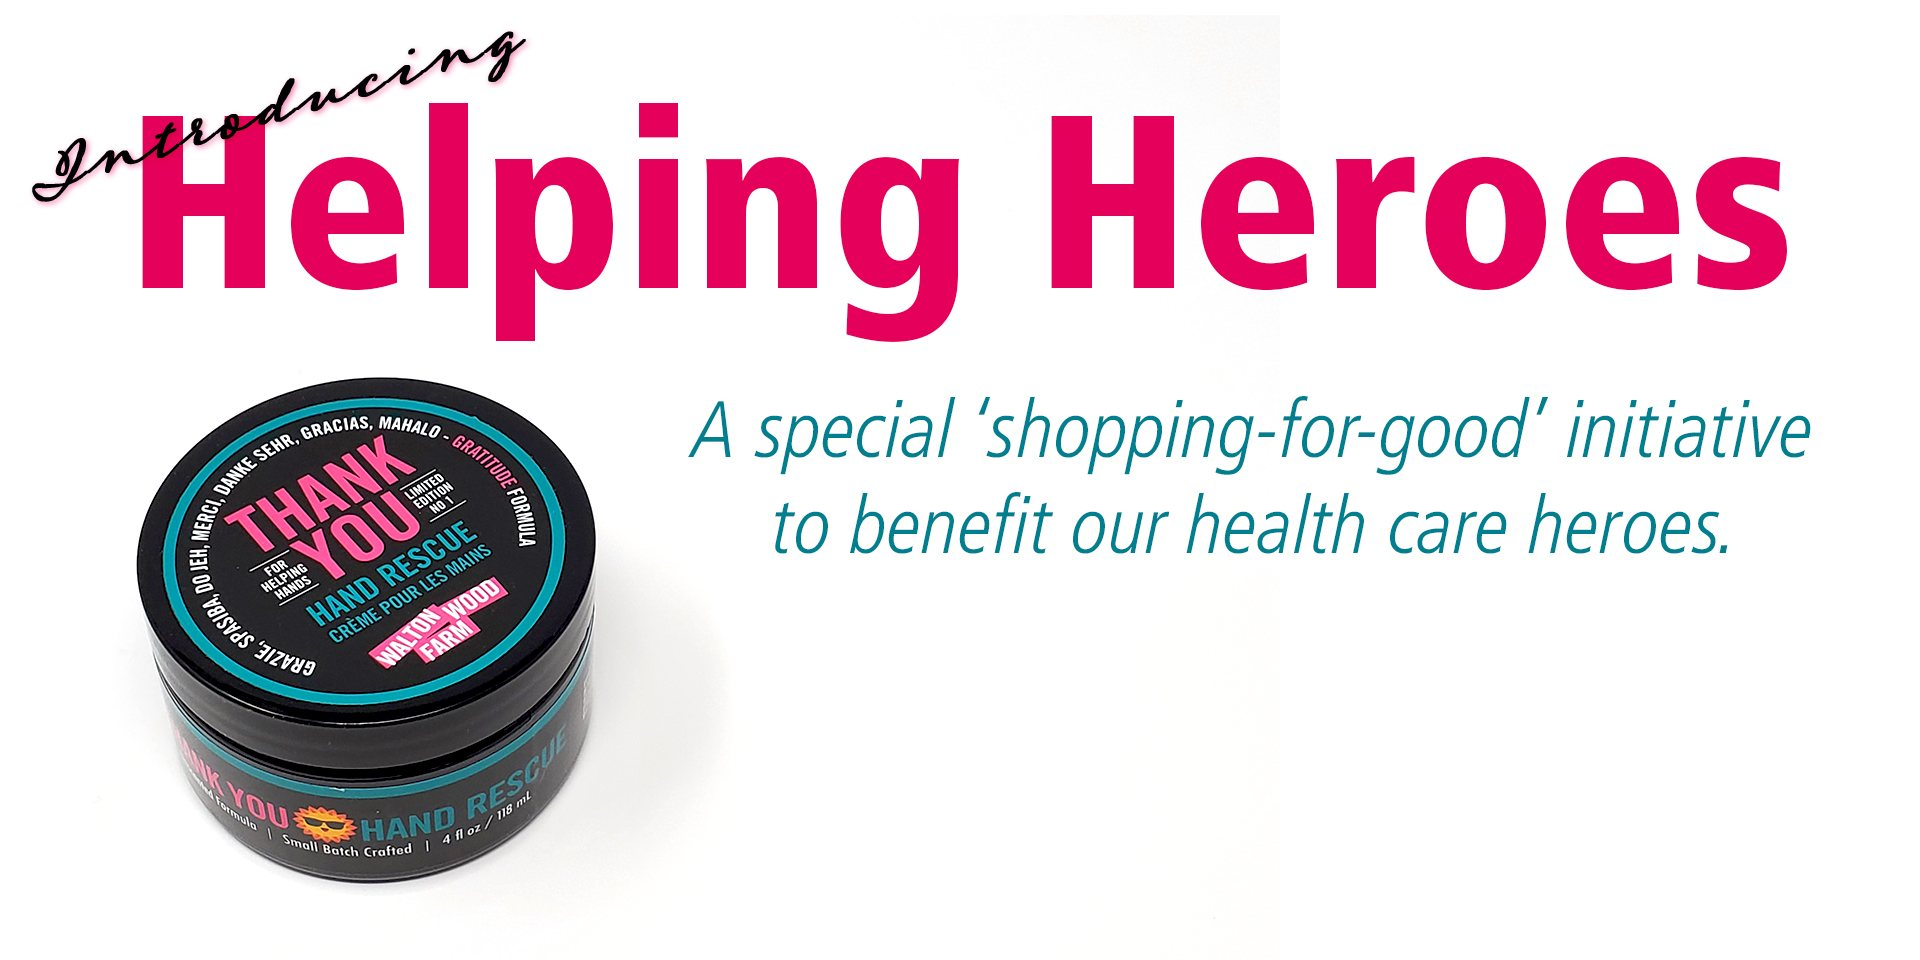 Introducing Helping Heroes, a shopping initiative to benefit our health care heroes.